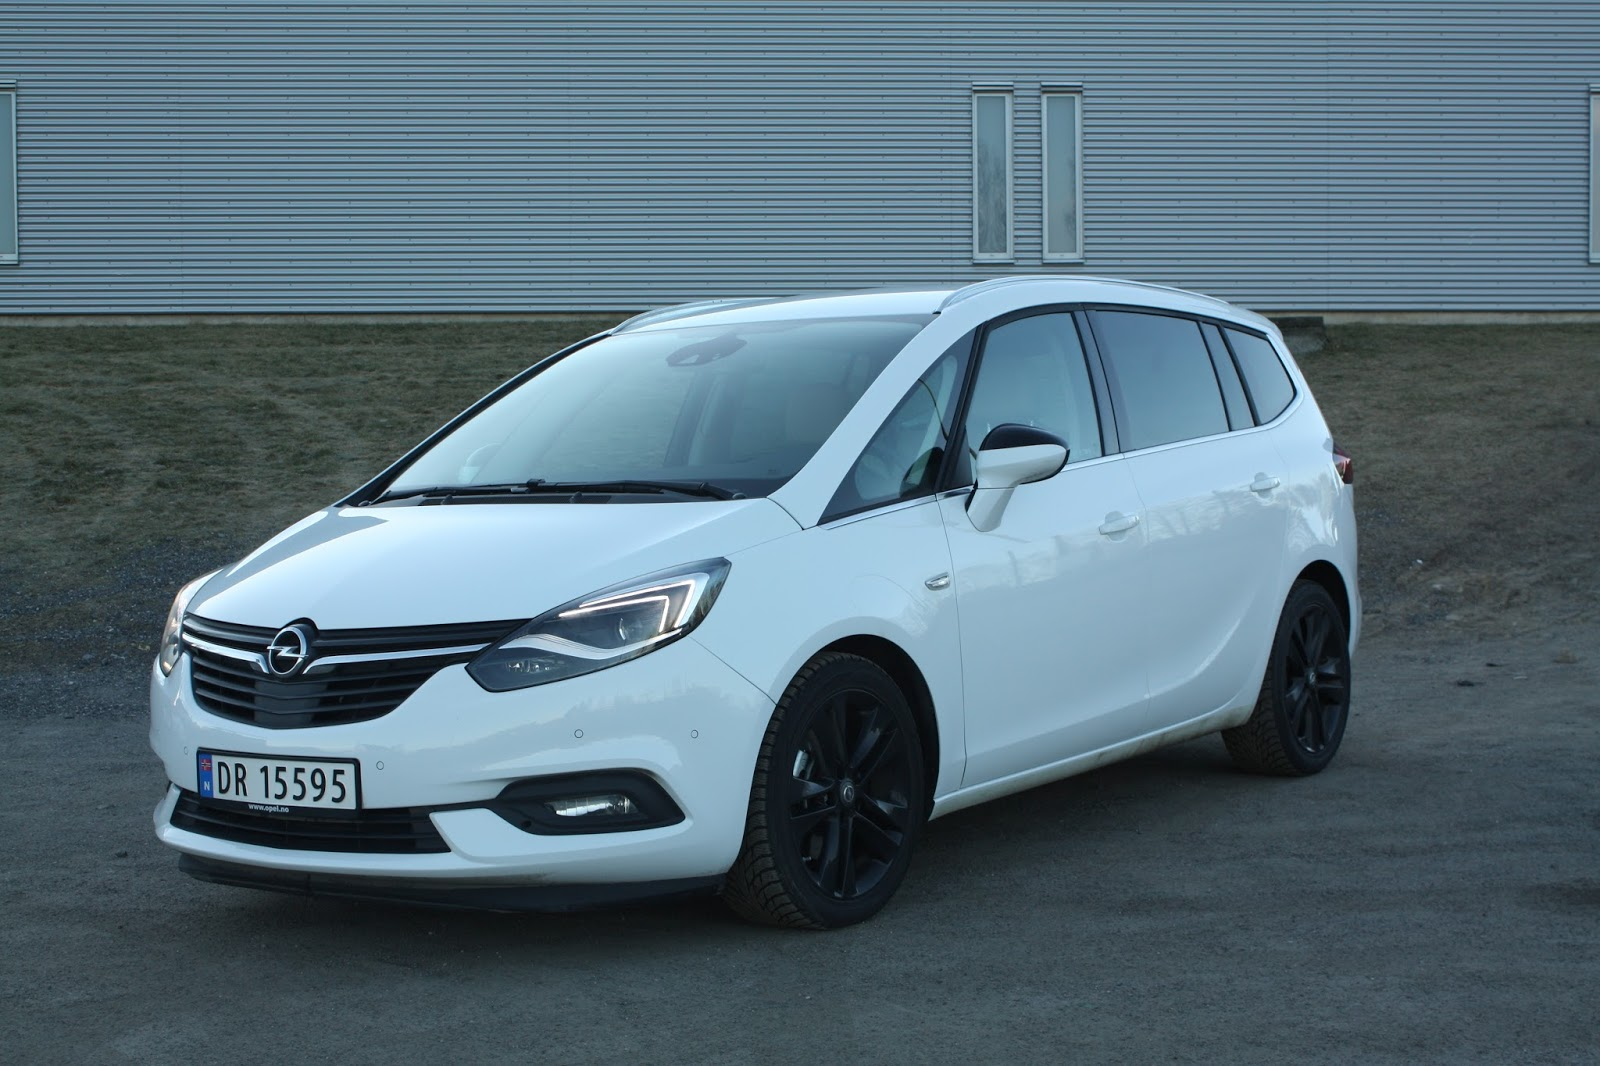 test opel zafira 2 0 cdti premium aut bil og motorbloggen. Black Bedroom Furniture Sets. Home Design Ideas